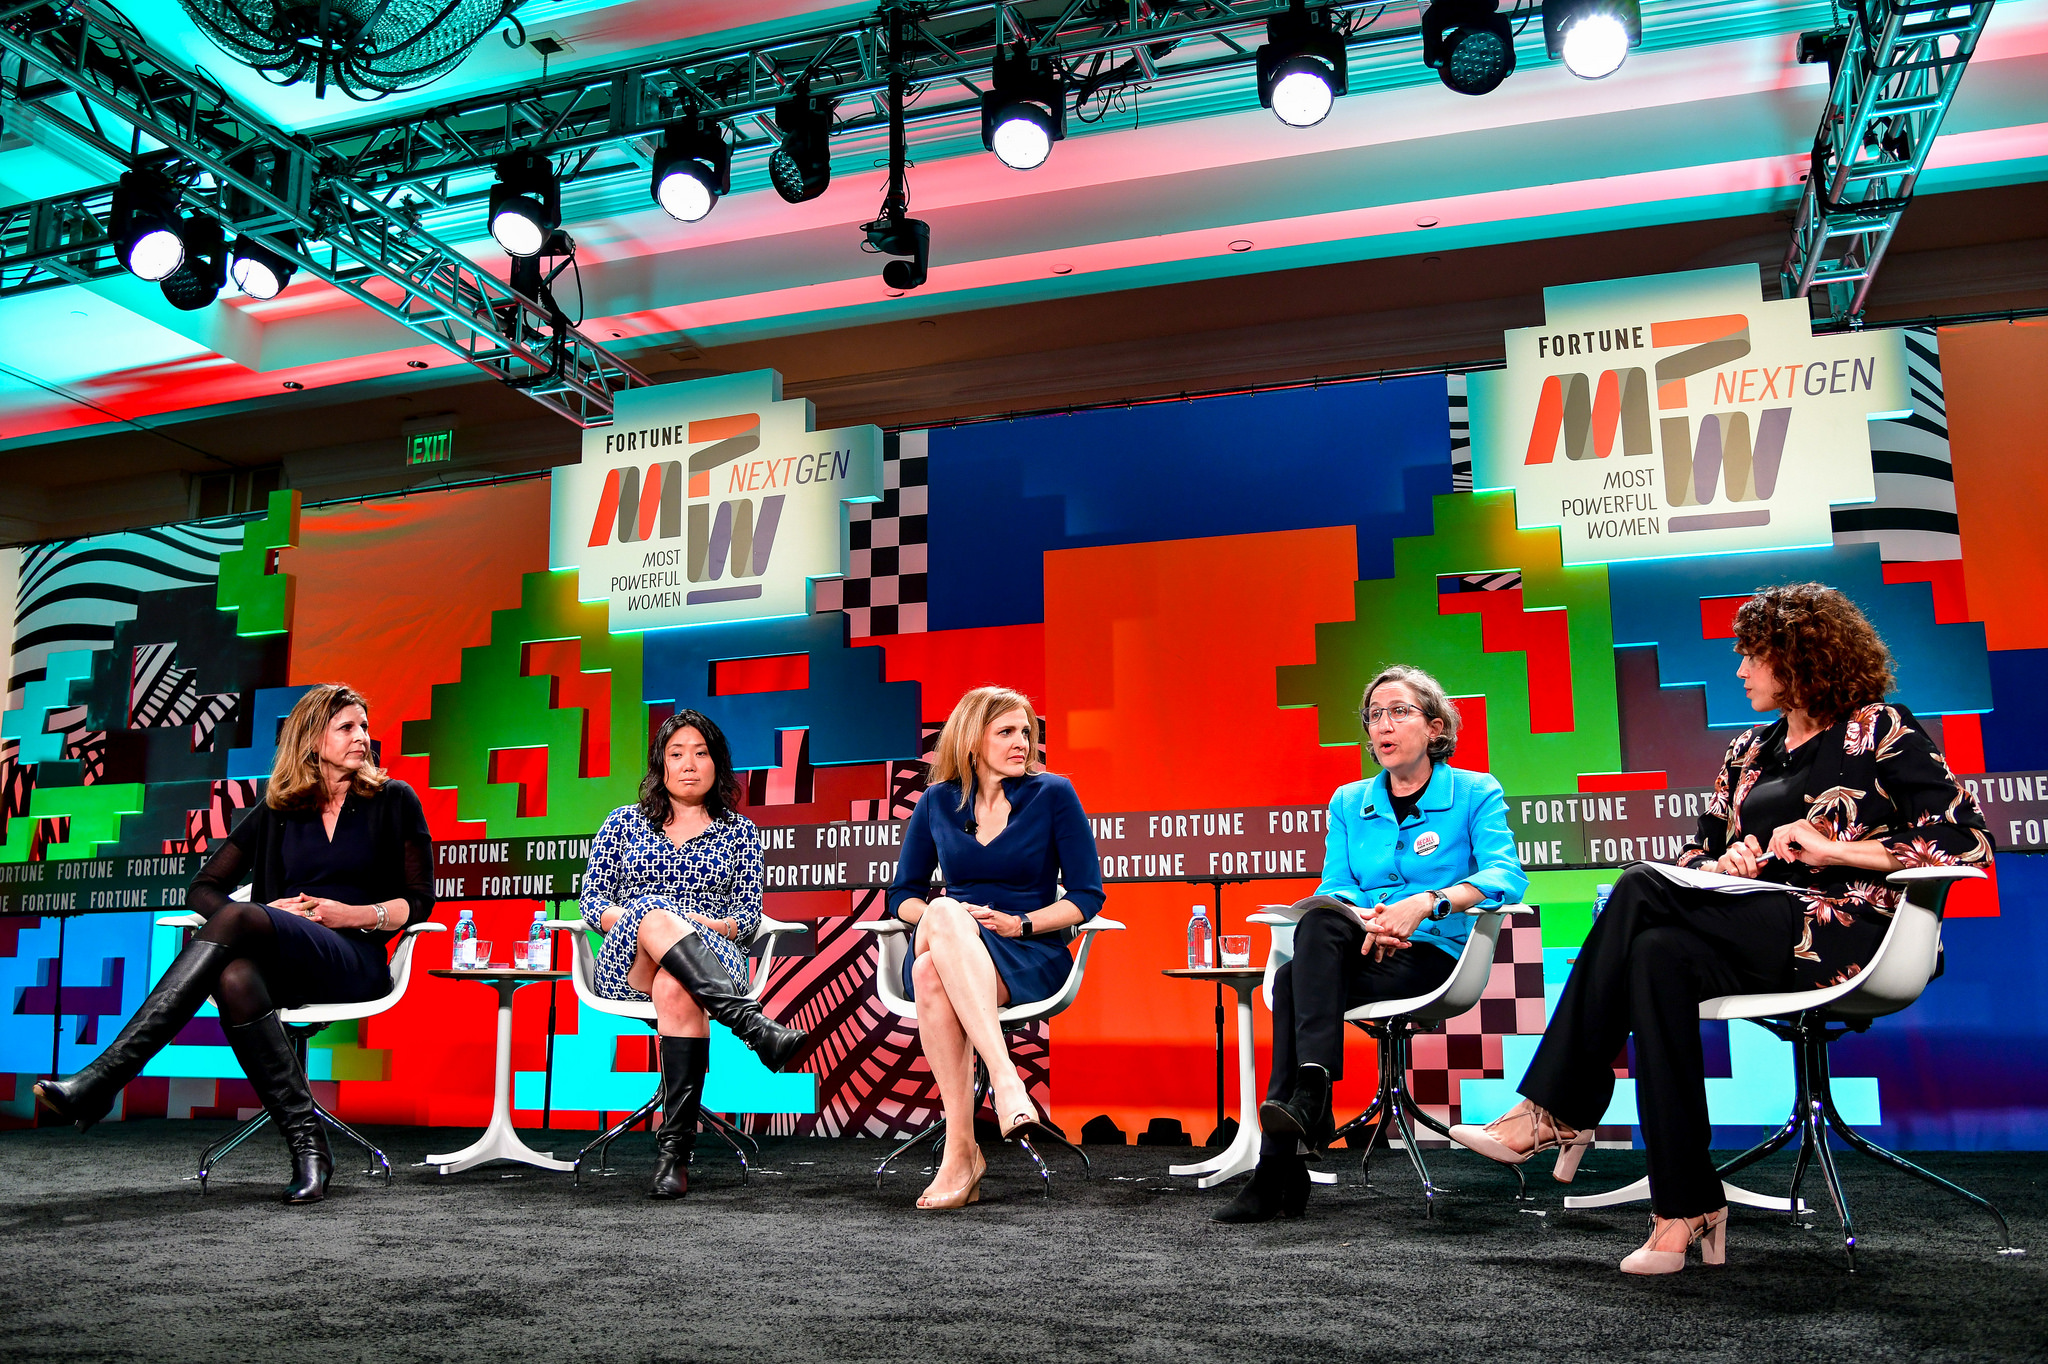 Fortune Most Powerful Women Next Gen 2017 MONDAY, NOVEMBER 13, 2017 LAGUNA NIGUEL, CA: Michele Landis Dauber, Frederick I. Richman Professor of Law; Professor of Sociology, Stanford Christa Quarles, Chief Executive Officer, OpenTable Niniane Wang, Founder and CEO, Evertoon Amy Ziering, Producer and Director Moderator: Michal Lev-Ram, Fortune